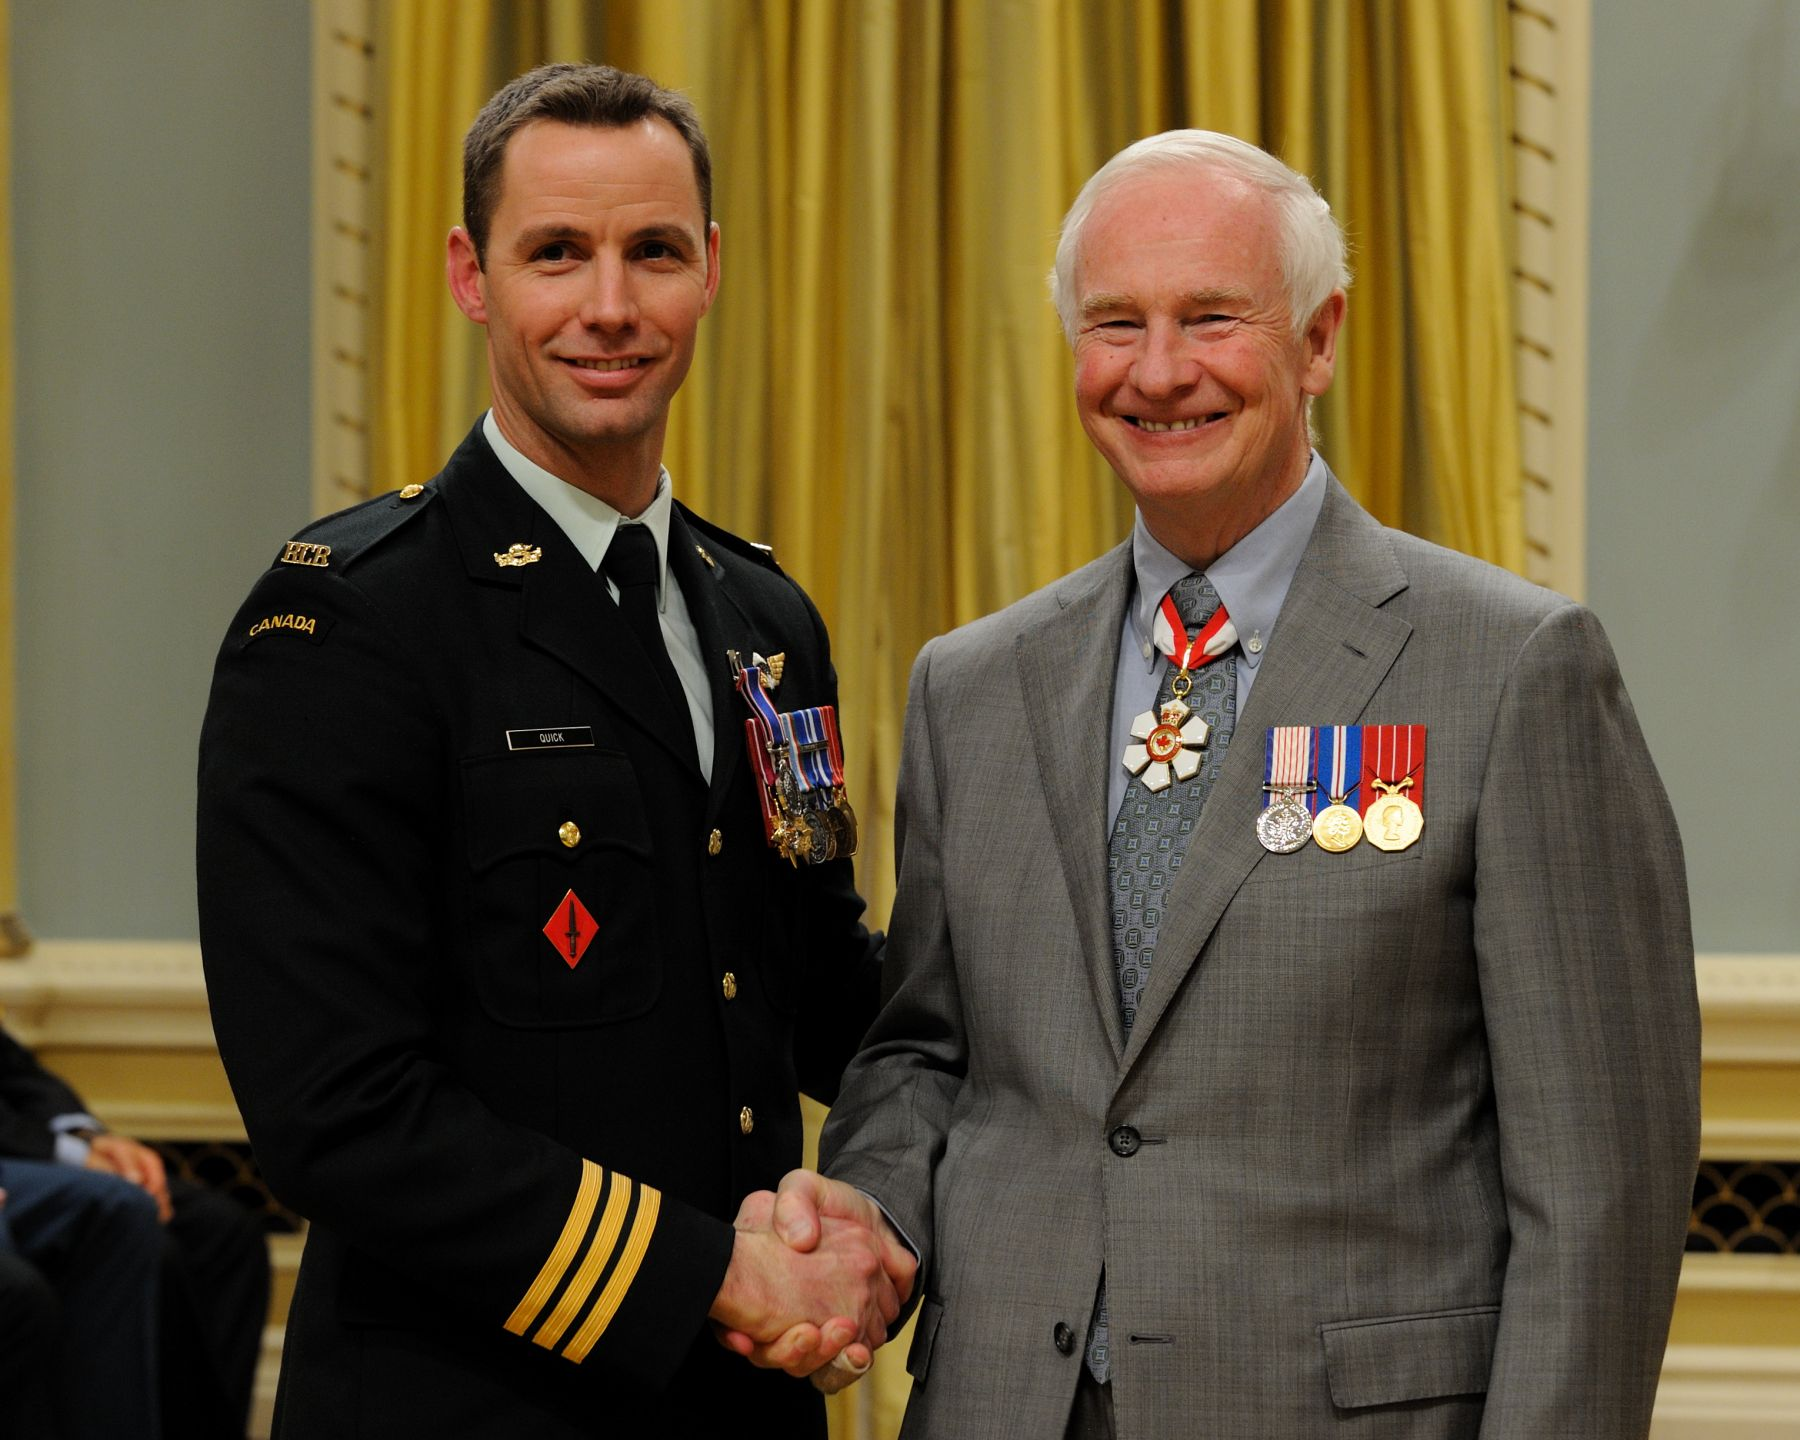 Major David Nelson Quick, C.D., received the Operational Service Medal for his work in Haiti.